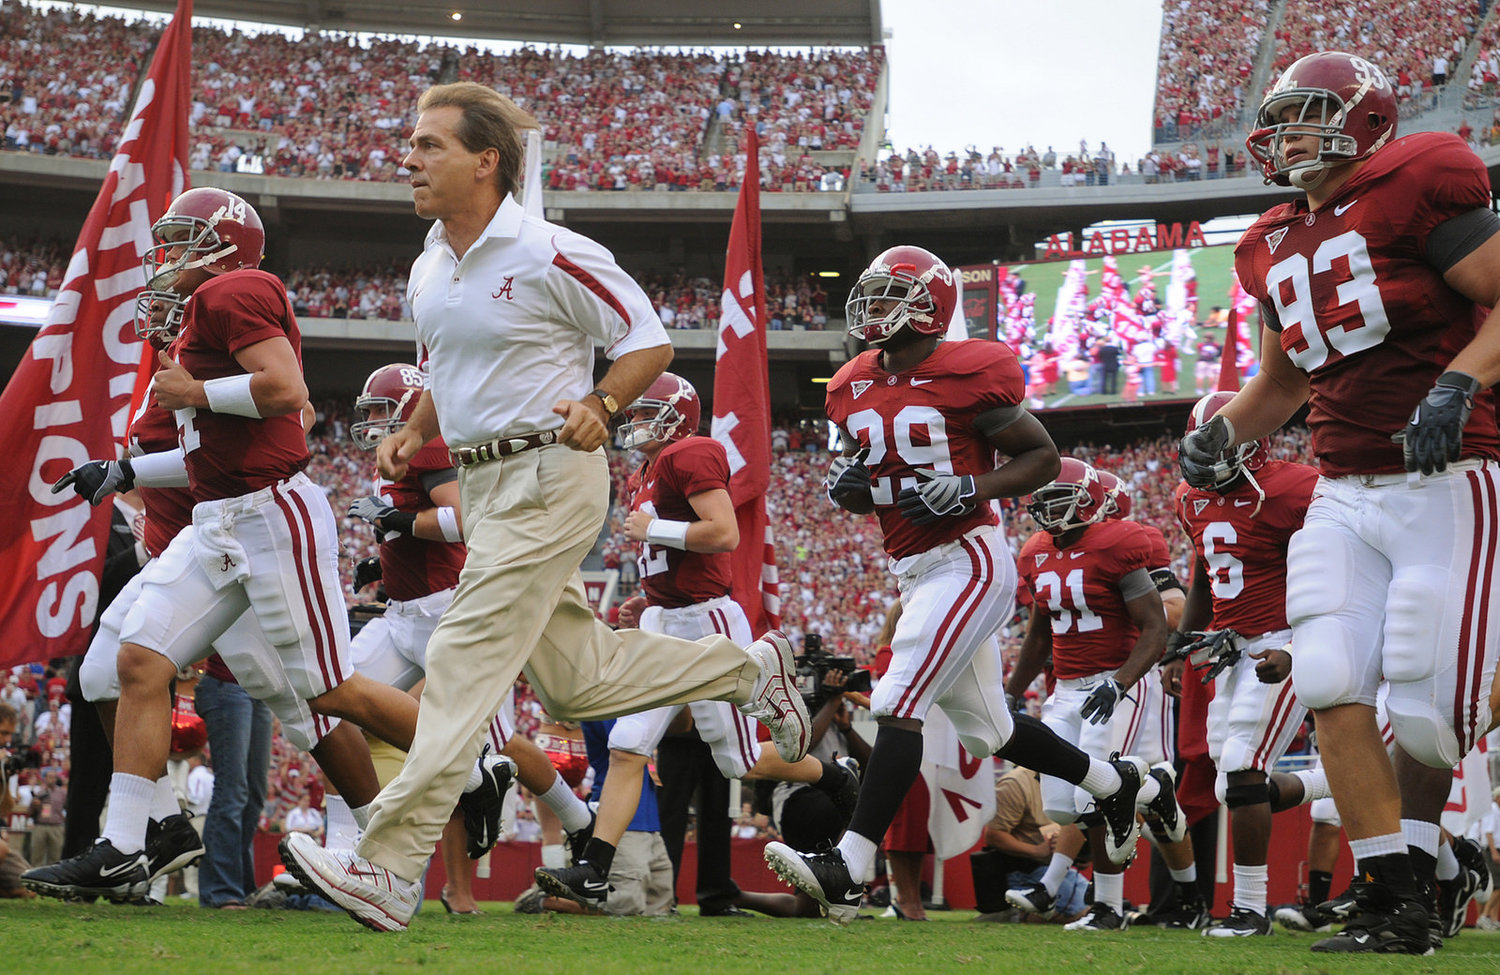 Nick Saban and the Crimson Tide are an odds-on favorite to return to the College Football Playoff this season.